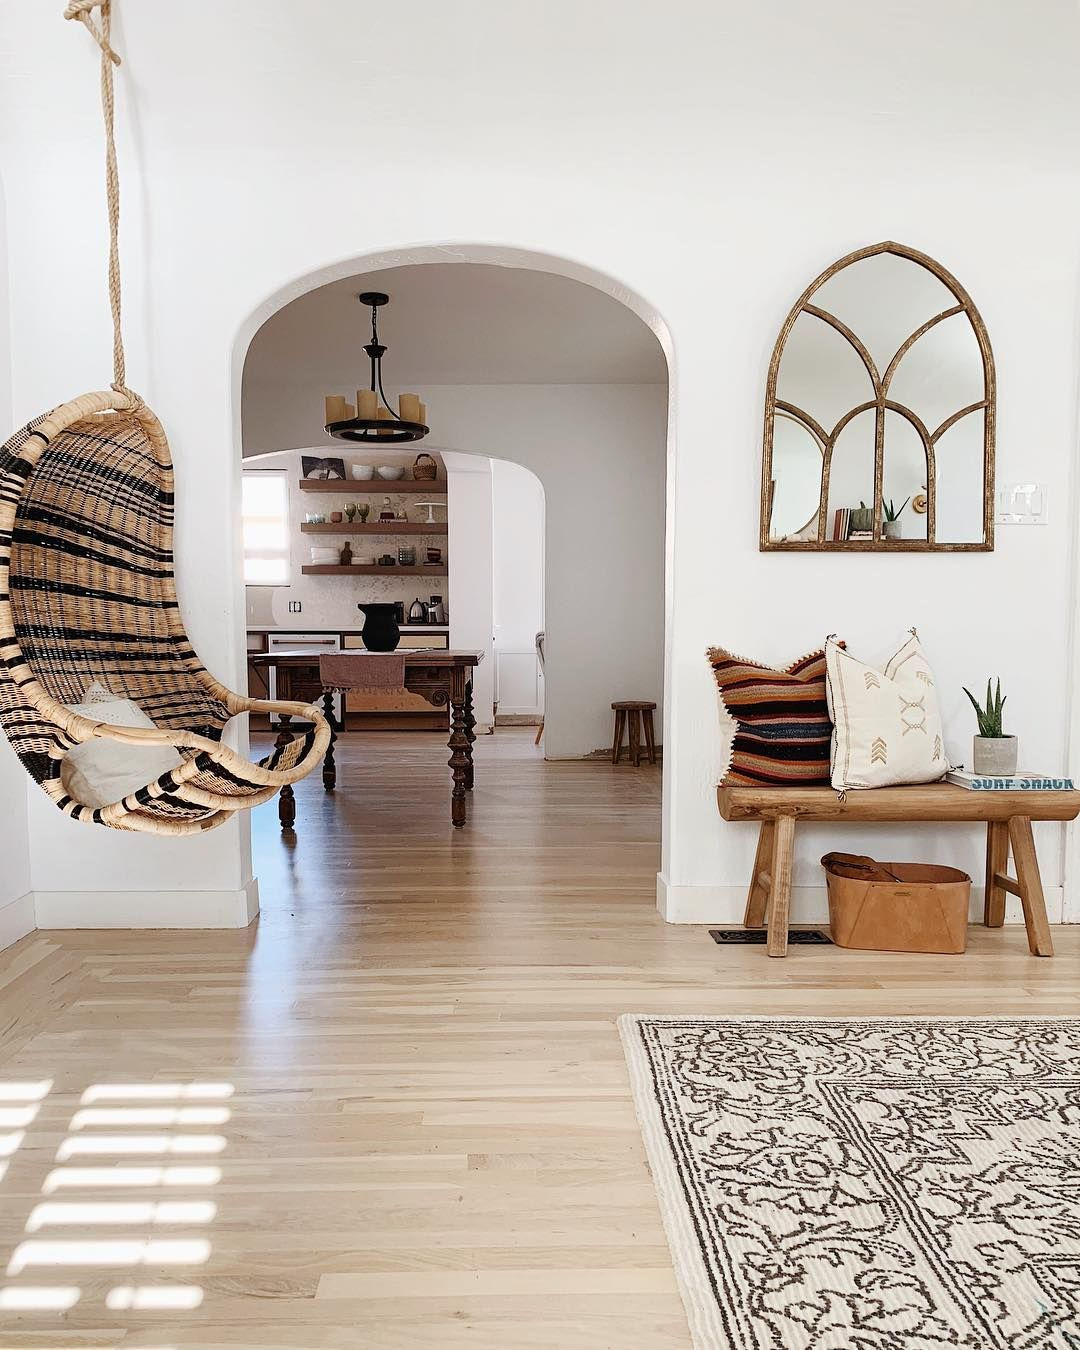 We love this striped hanging swing and patterned rug in this boho